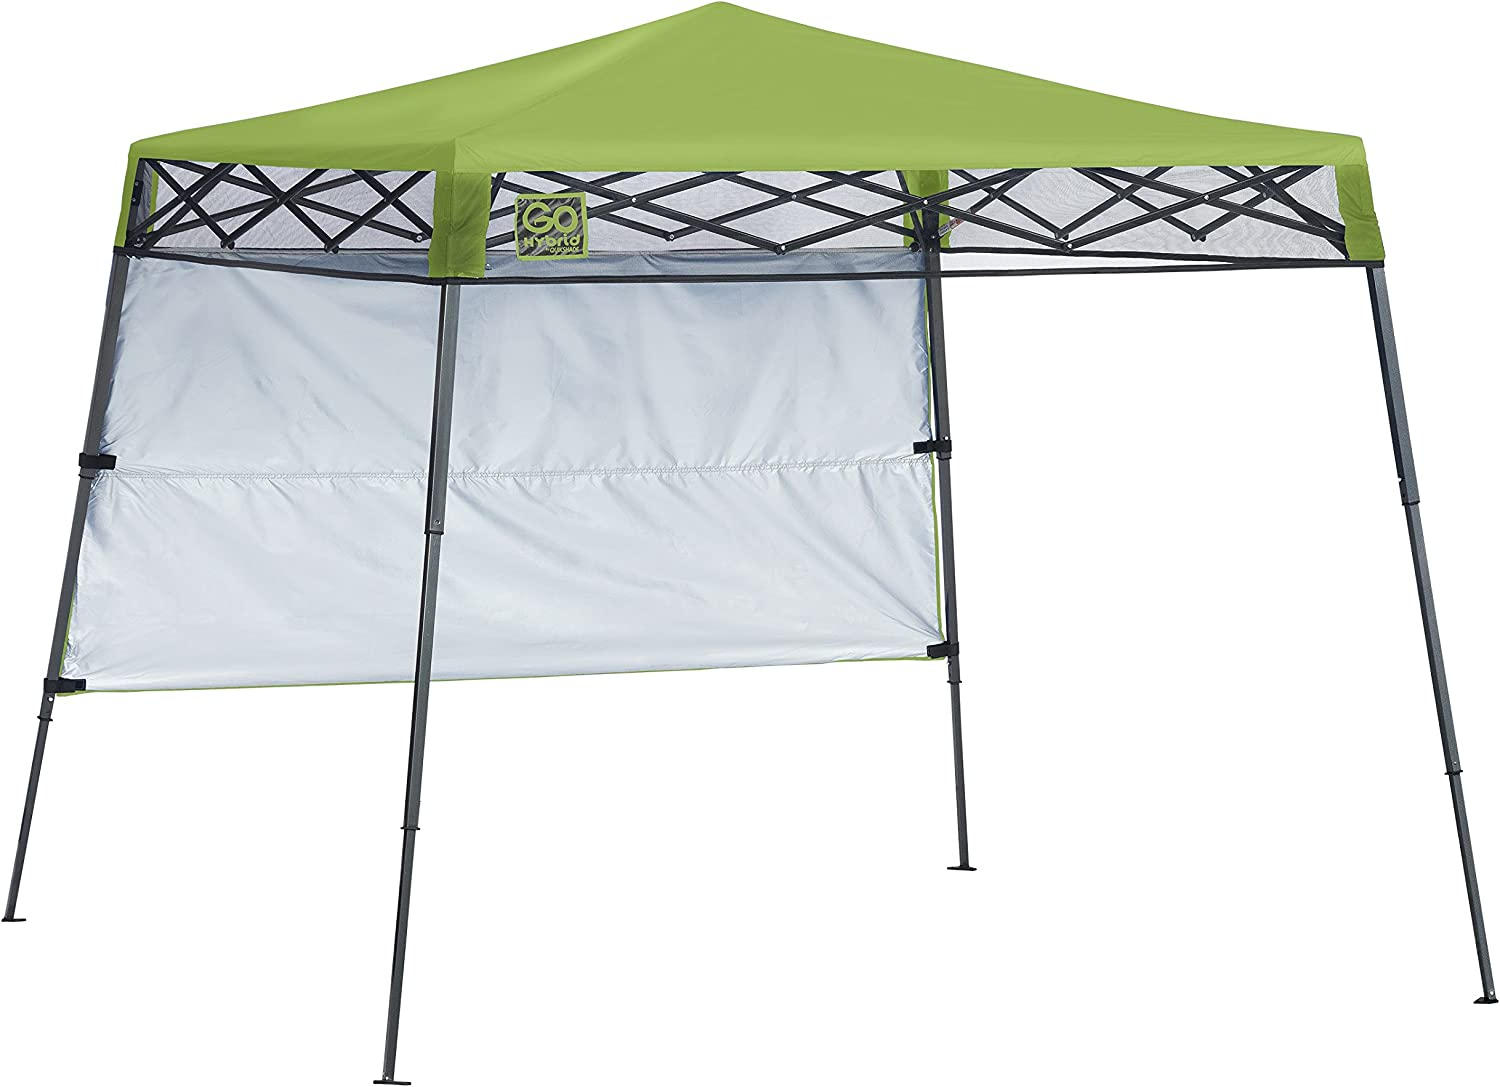 Quik Shade Canopy for Sun and Rain Protection